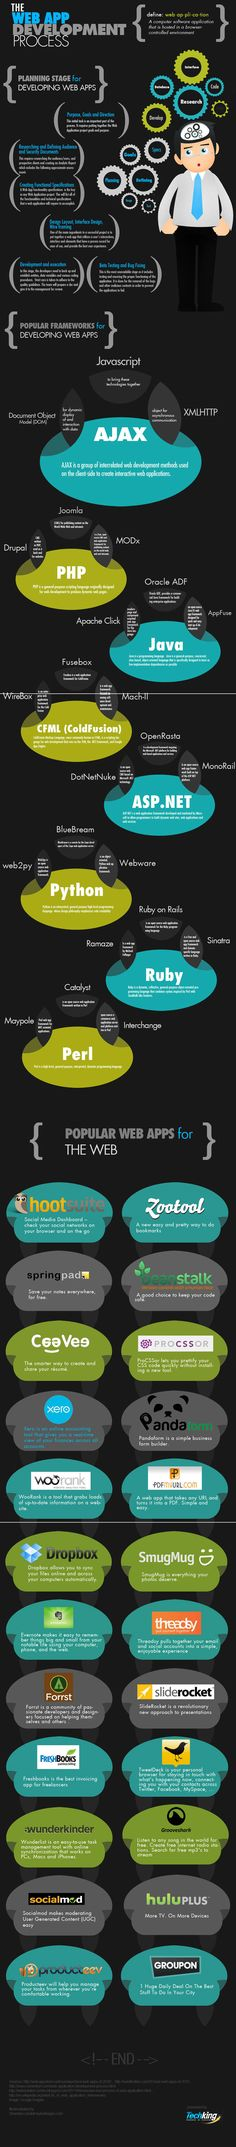 Infographic of the Web Development Process, very usefull ! #webapp #webapplication #webdevelopment By TechKing